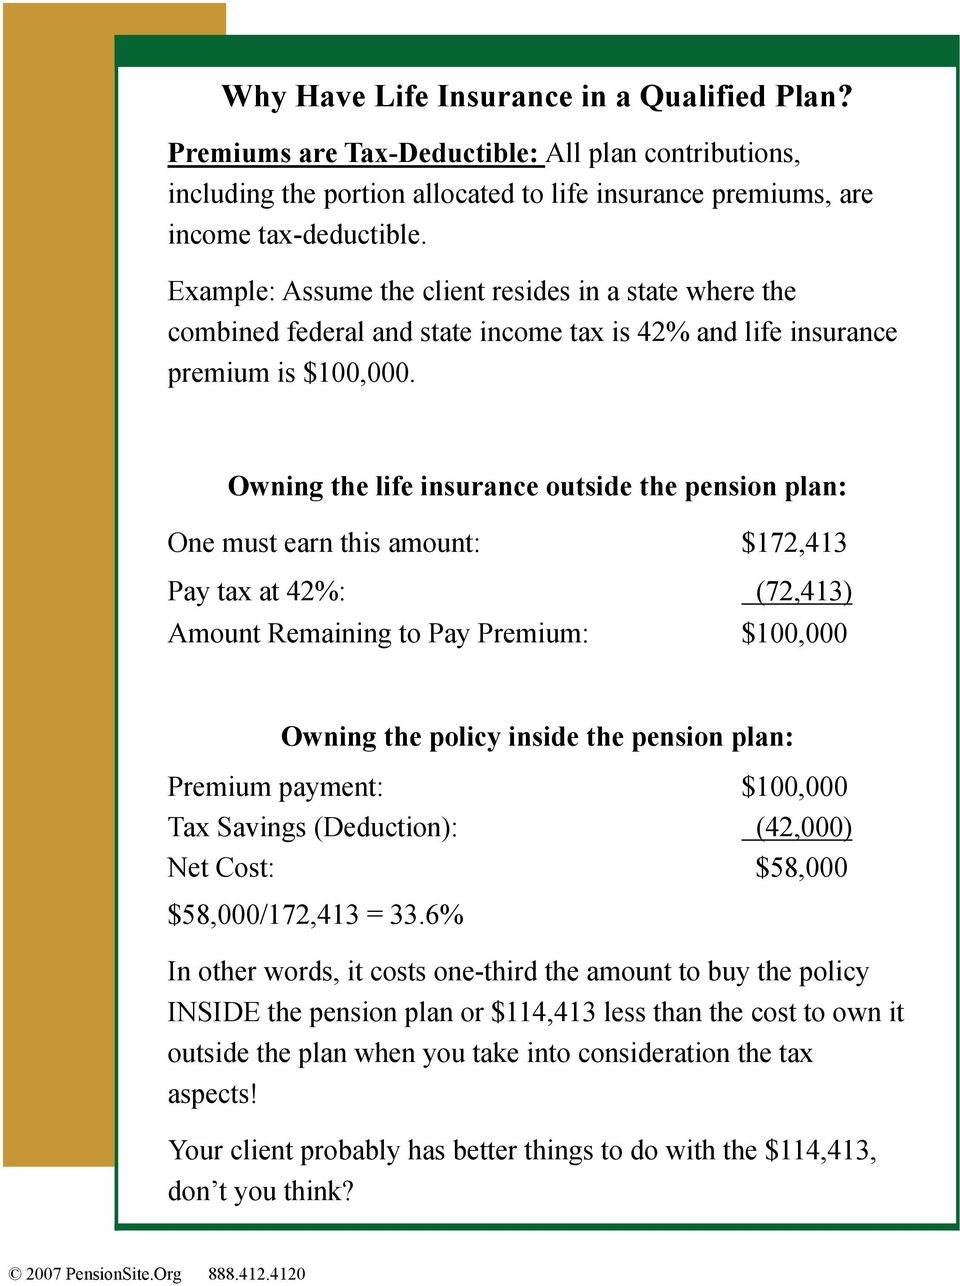 Owning the life insurance outside the pension plan: One must earn this amount: $172,413 Pay tax at 42%: (72,413) Amount Remaining to Pay Premium: $100,000 Owning the policy inside the pension plan: